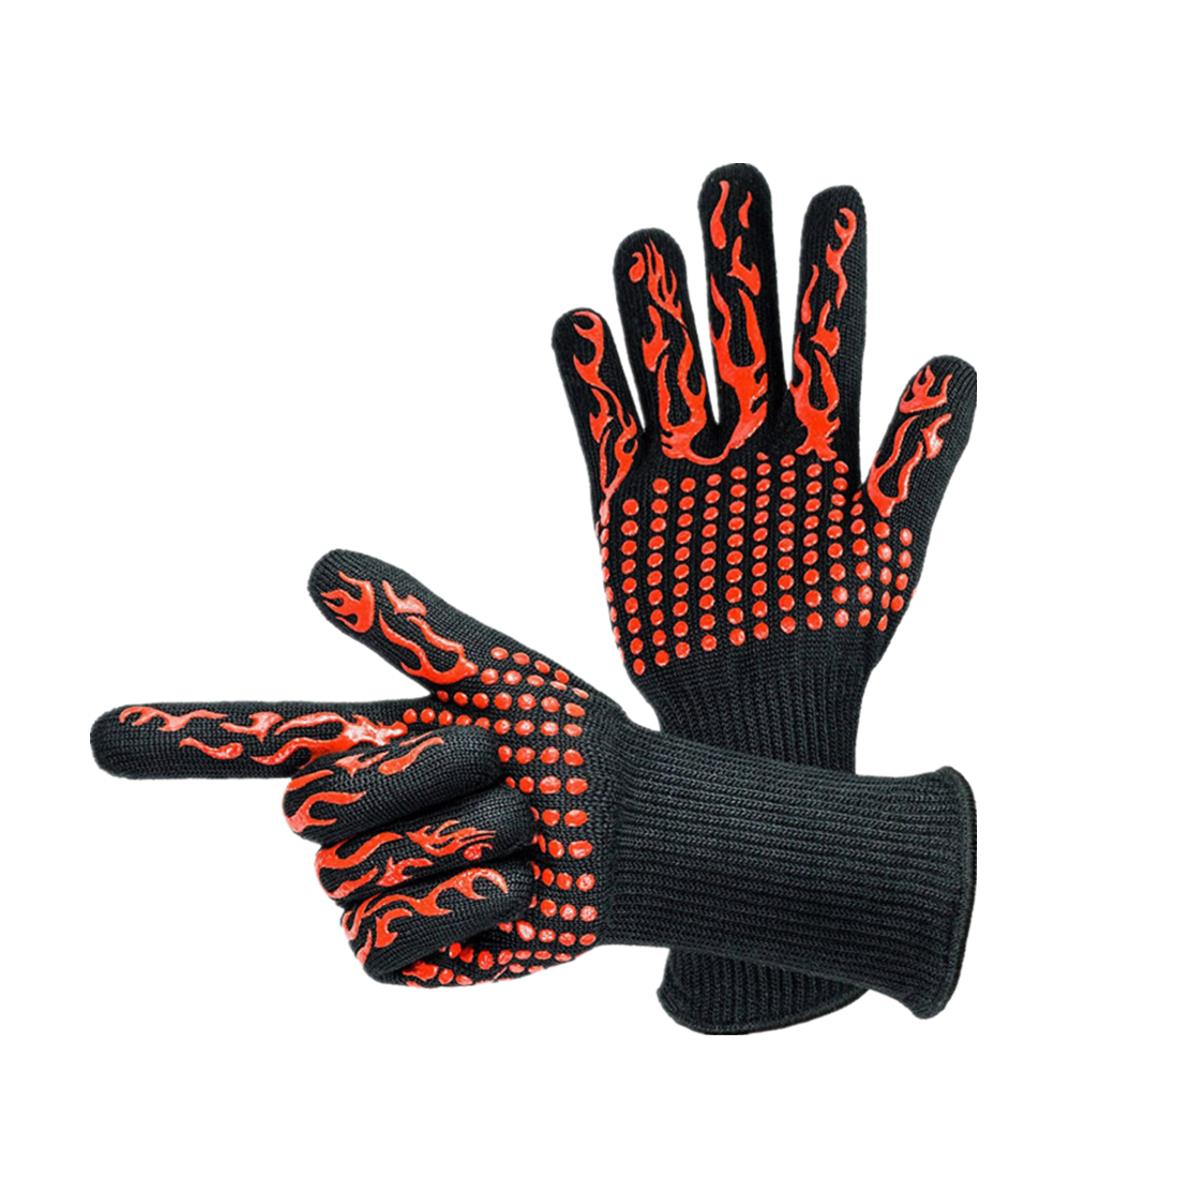 BBQ Grilling Cooking Gloves 932°F Heat Resistant Barbecue Gloves